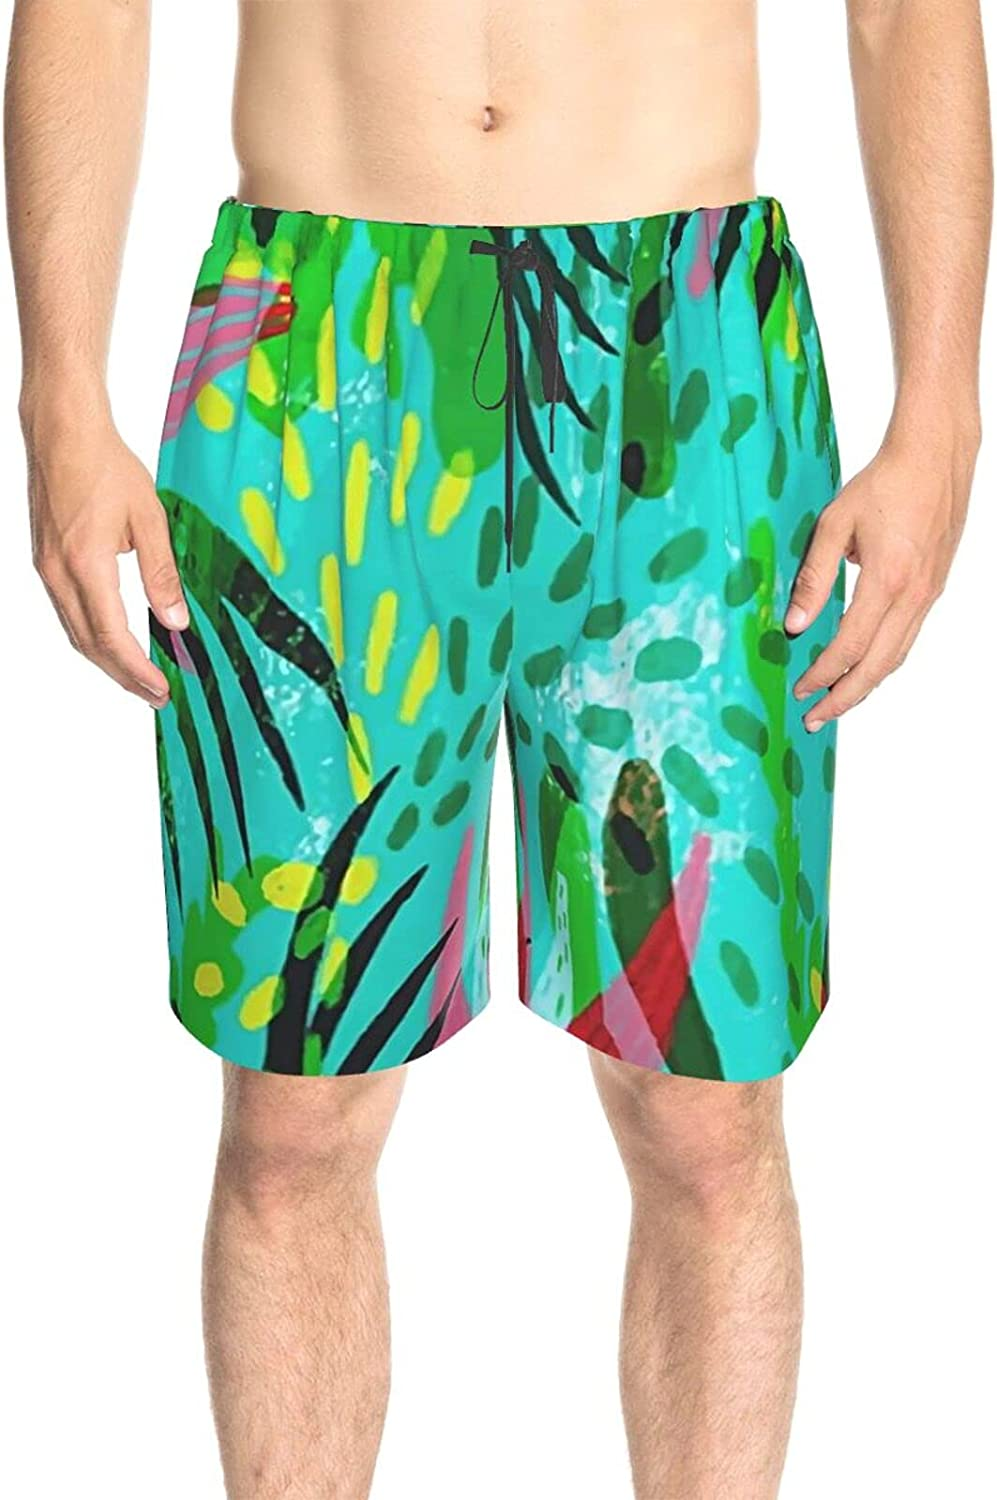 Mens Swim Trunks Tropical Green Leaf Swim Board Shorts Quick Dry Cool Surf Beach Shorts with Liner